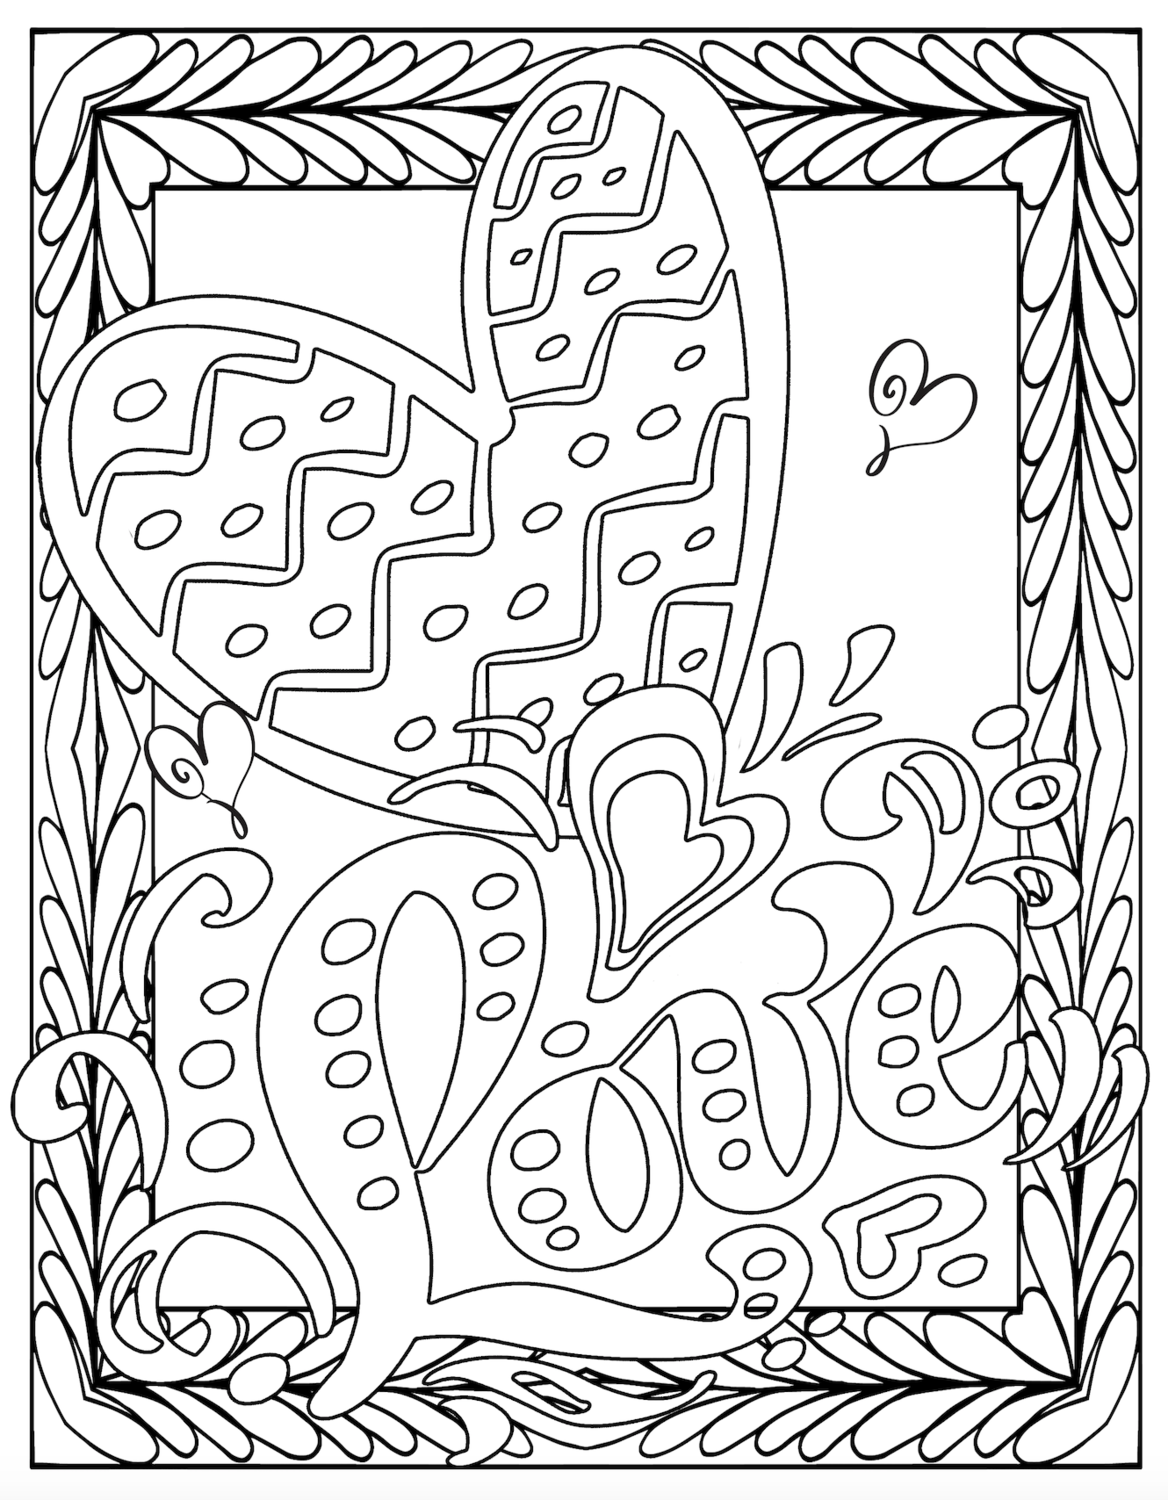 free printable valentine coloring pages valentines day coloring pages best coloring pages for kids printable valentine pages free coloring